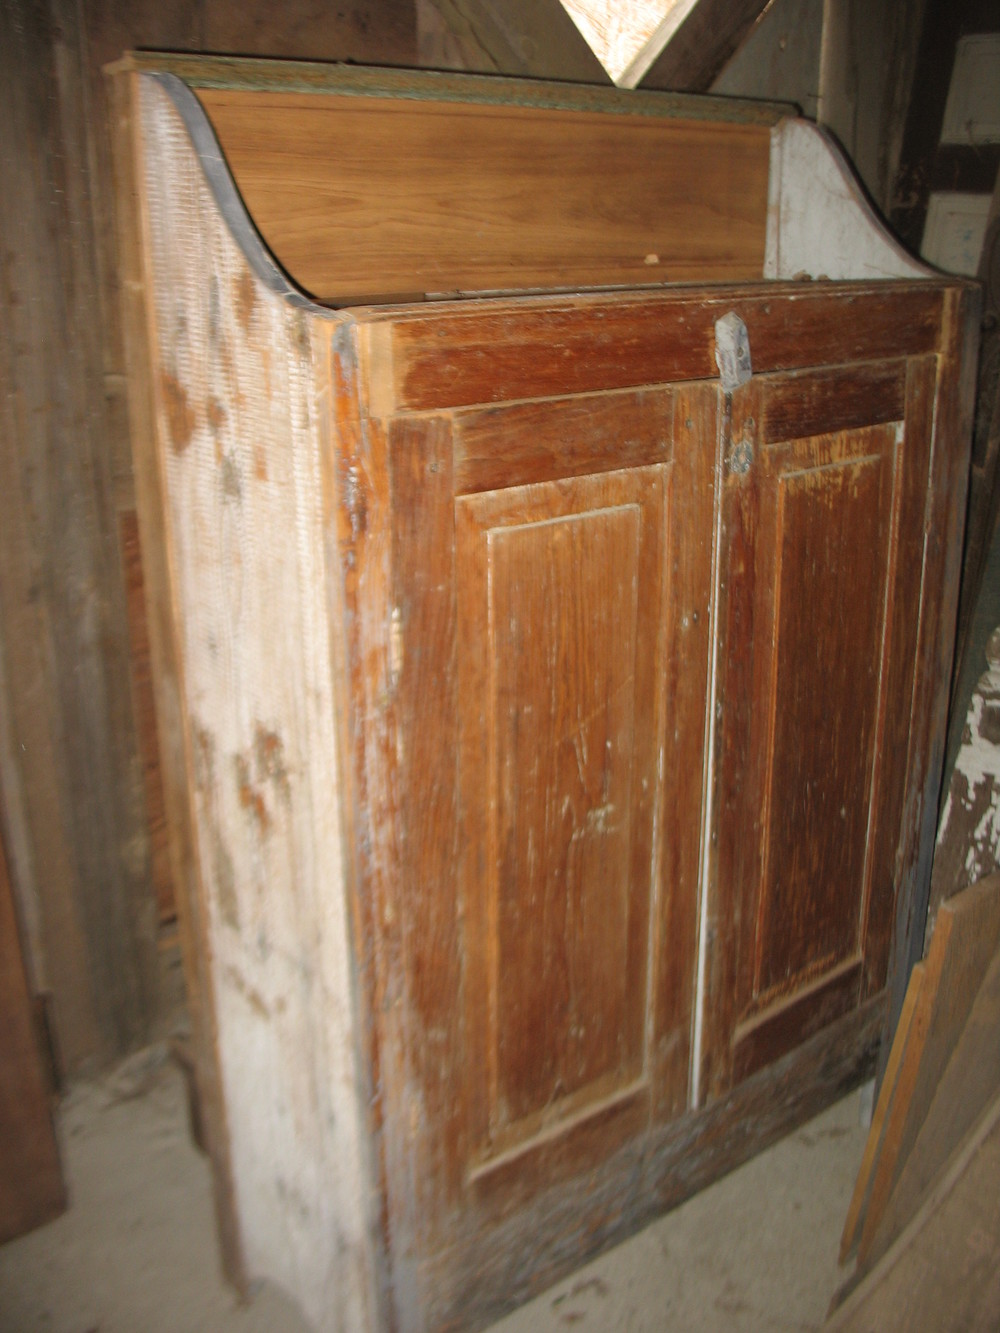 Primitive cupboard with original paint at ends.  Two doors open to reveal 4 shelves which are 38 inches long and 13 inches wide. The cupboard measures 5 feet tall from top to bottom in the back.  Is 44 inches wide and 15 inches deep. It is 51 inches tall in the front which means that the back piece is 9 inches. Price: NA